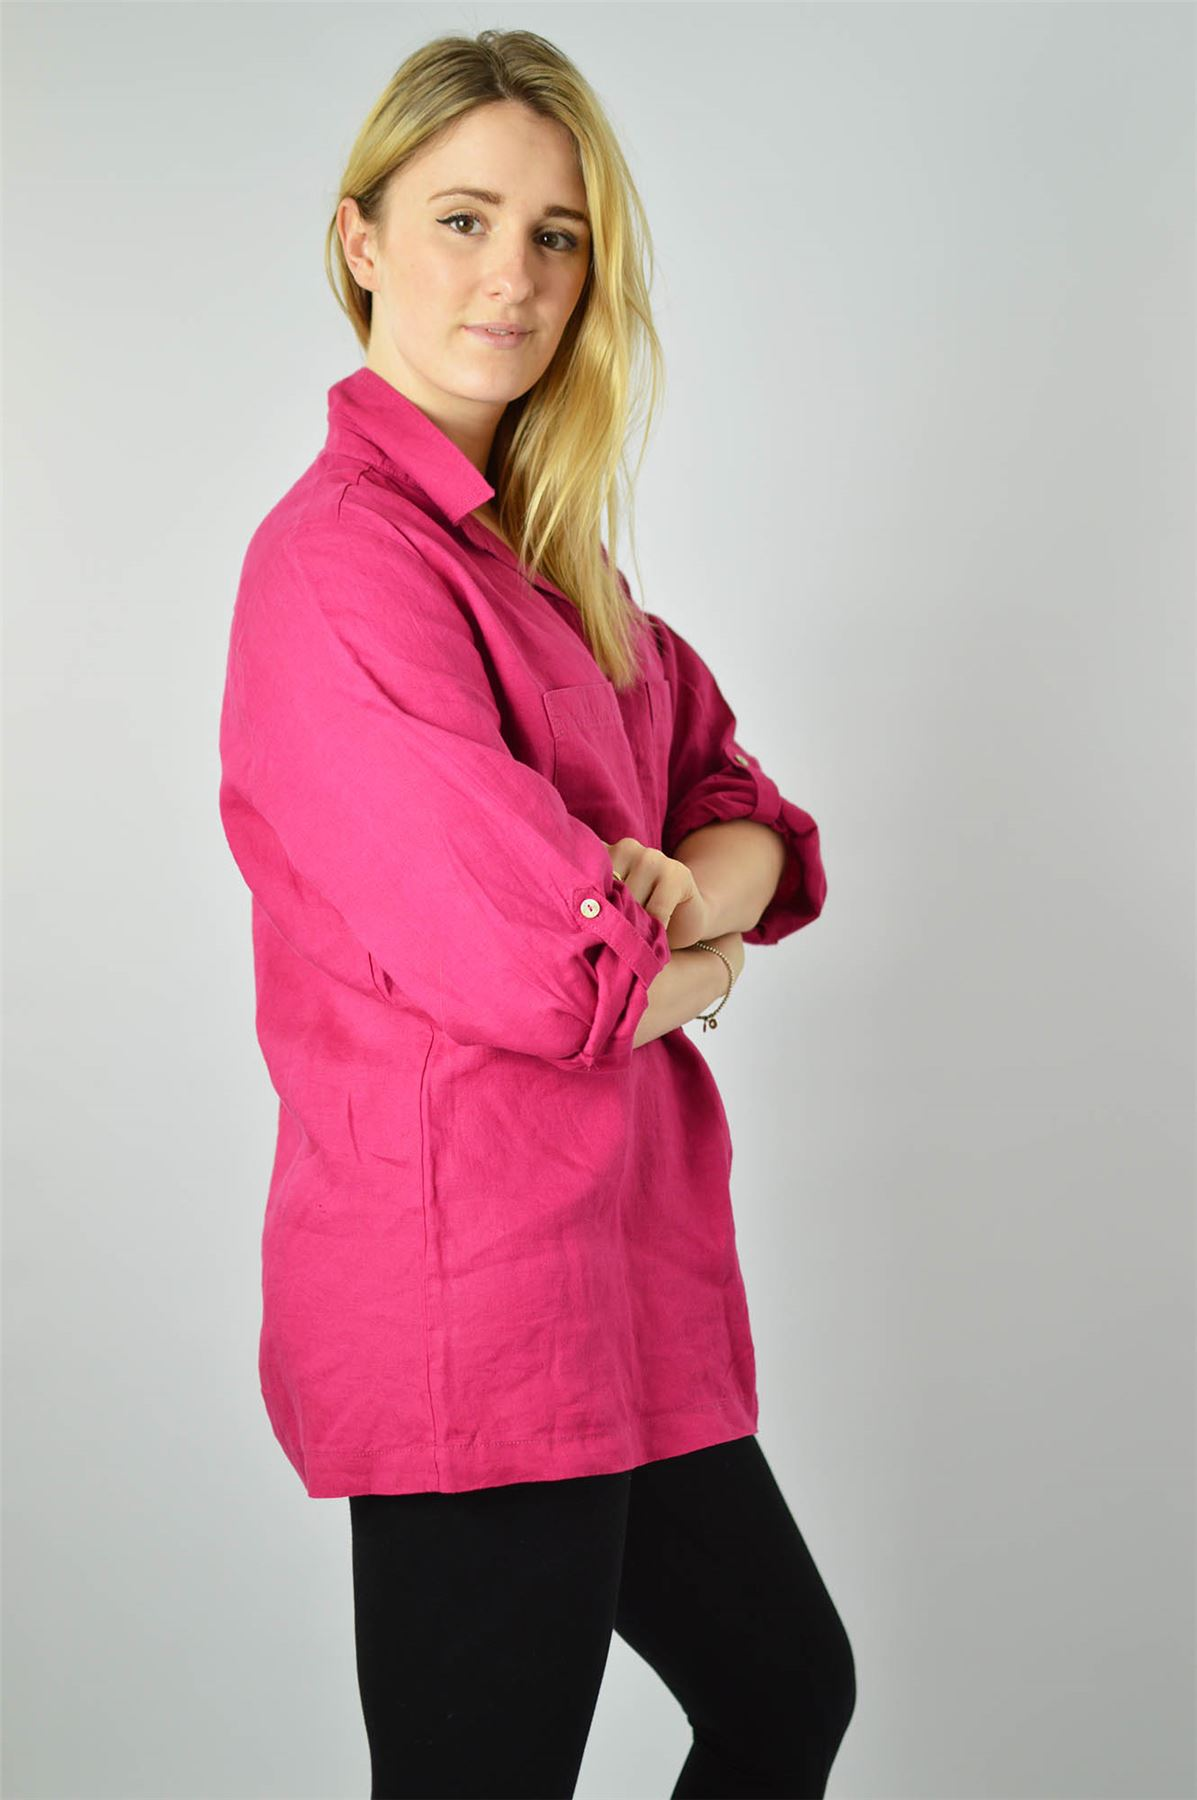 YESSICA-Linen-Blouse-Shirt-in-Pink-or-Ivory-RRP-25 thumbnail 13